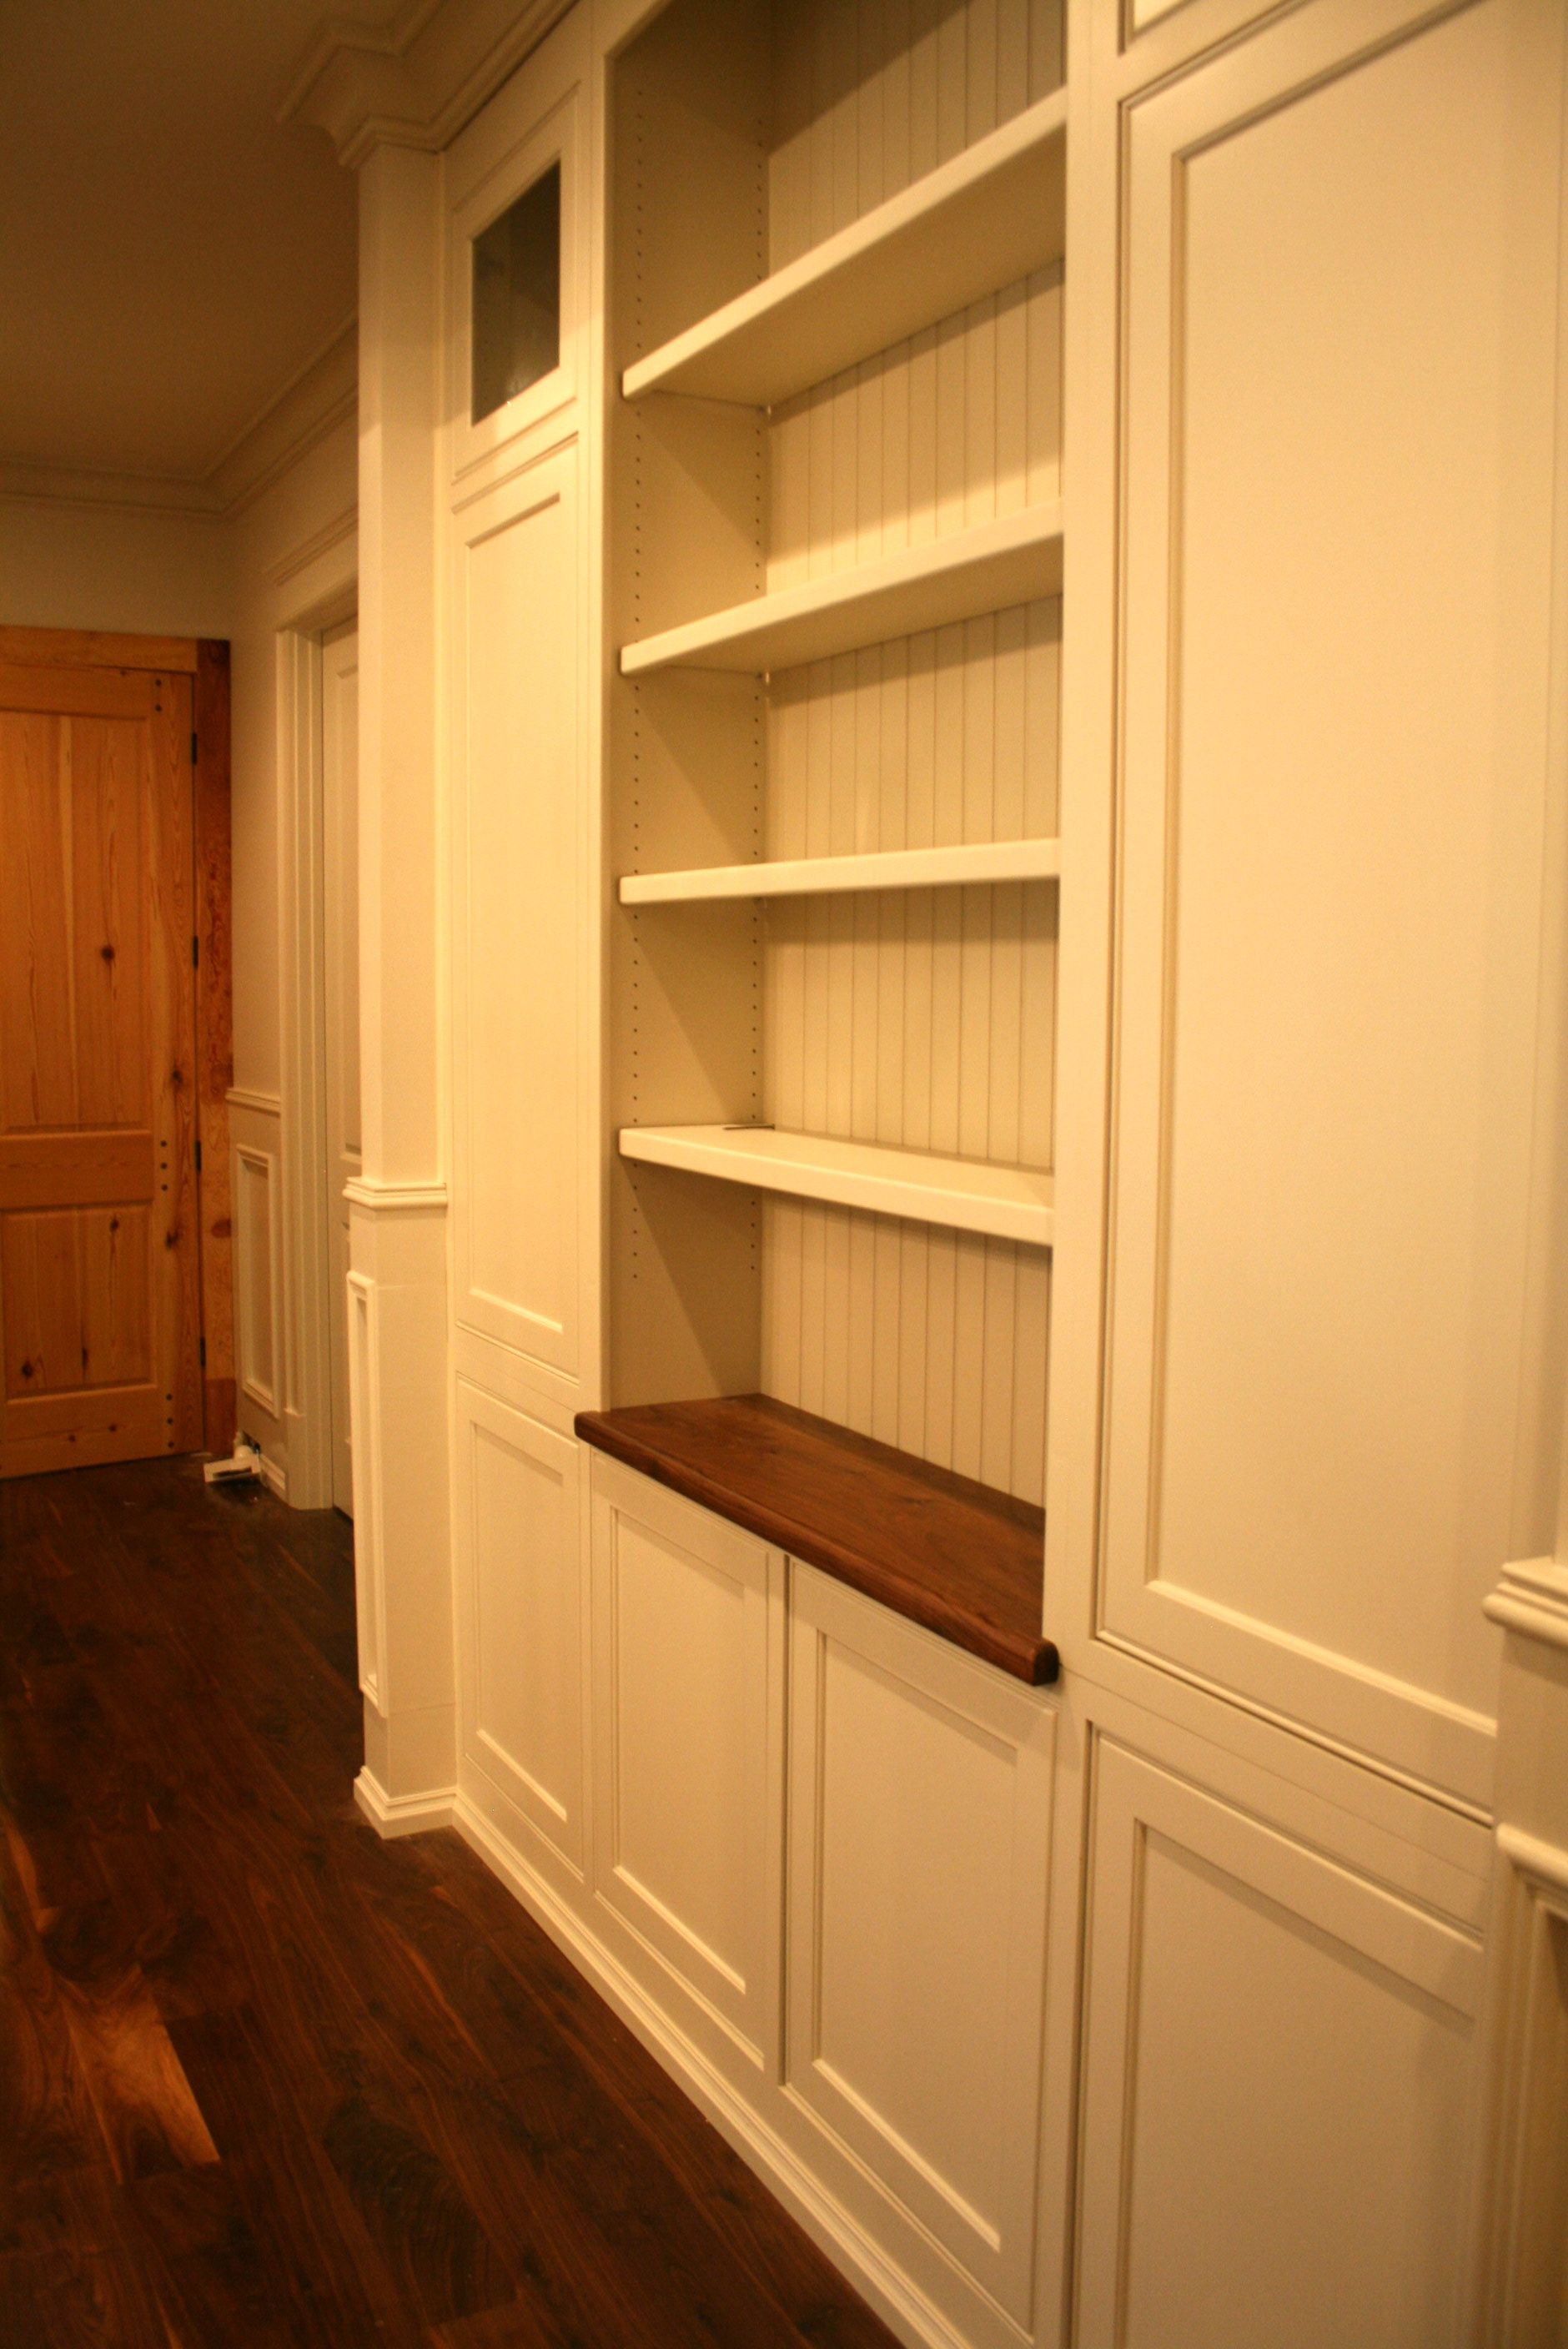 Narrow Hallway Built In Shelves With Enclosed Cabinets Beneath Narrow Hallway Hallway Storage Hallway Storage Cabinet